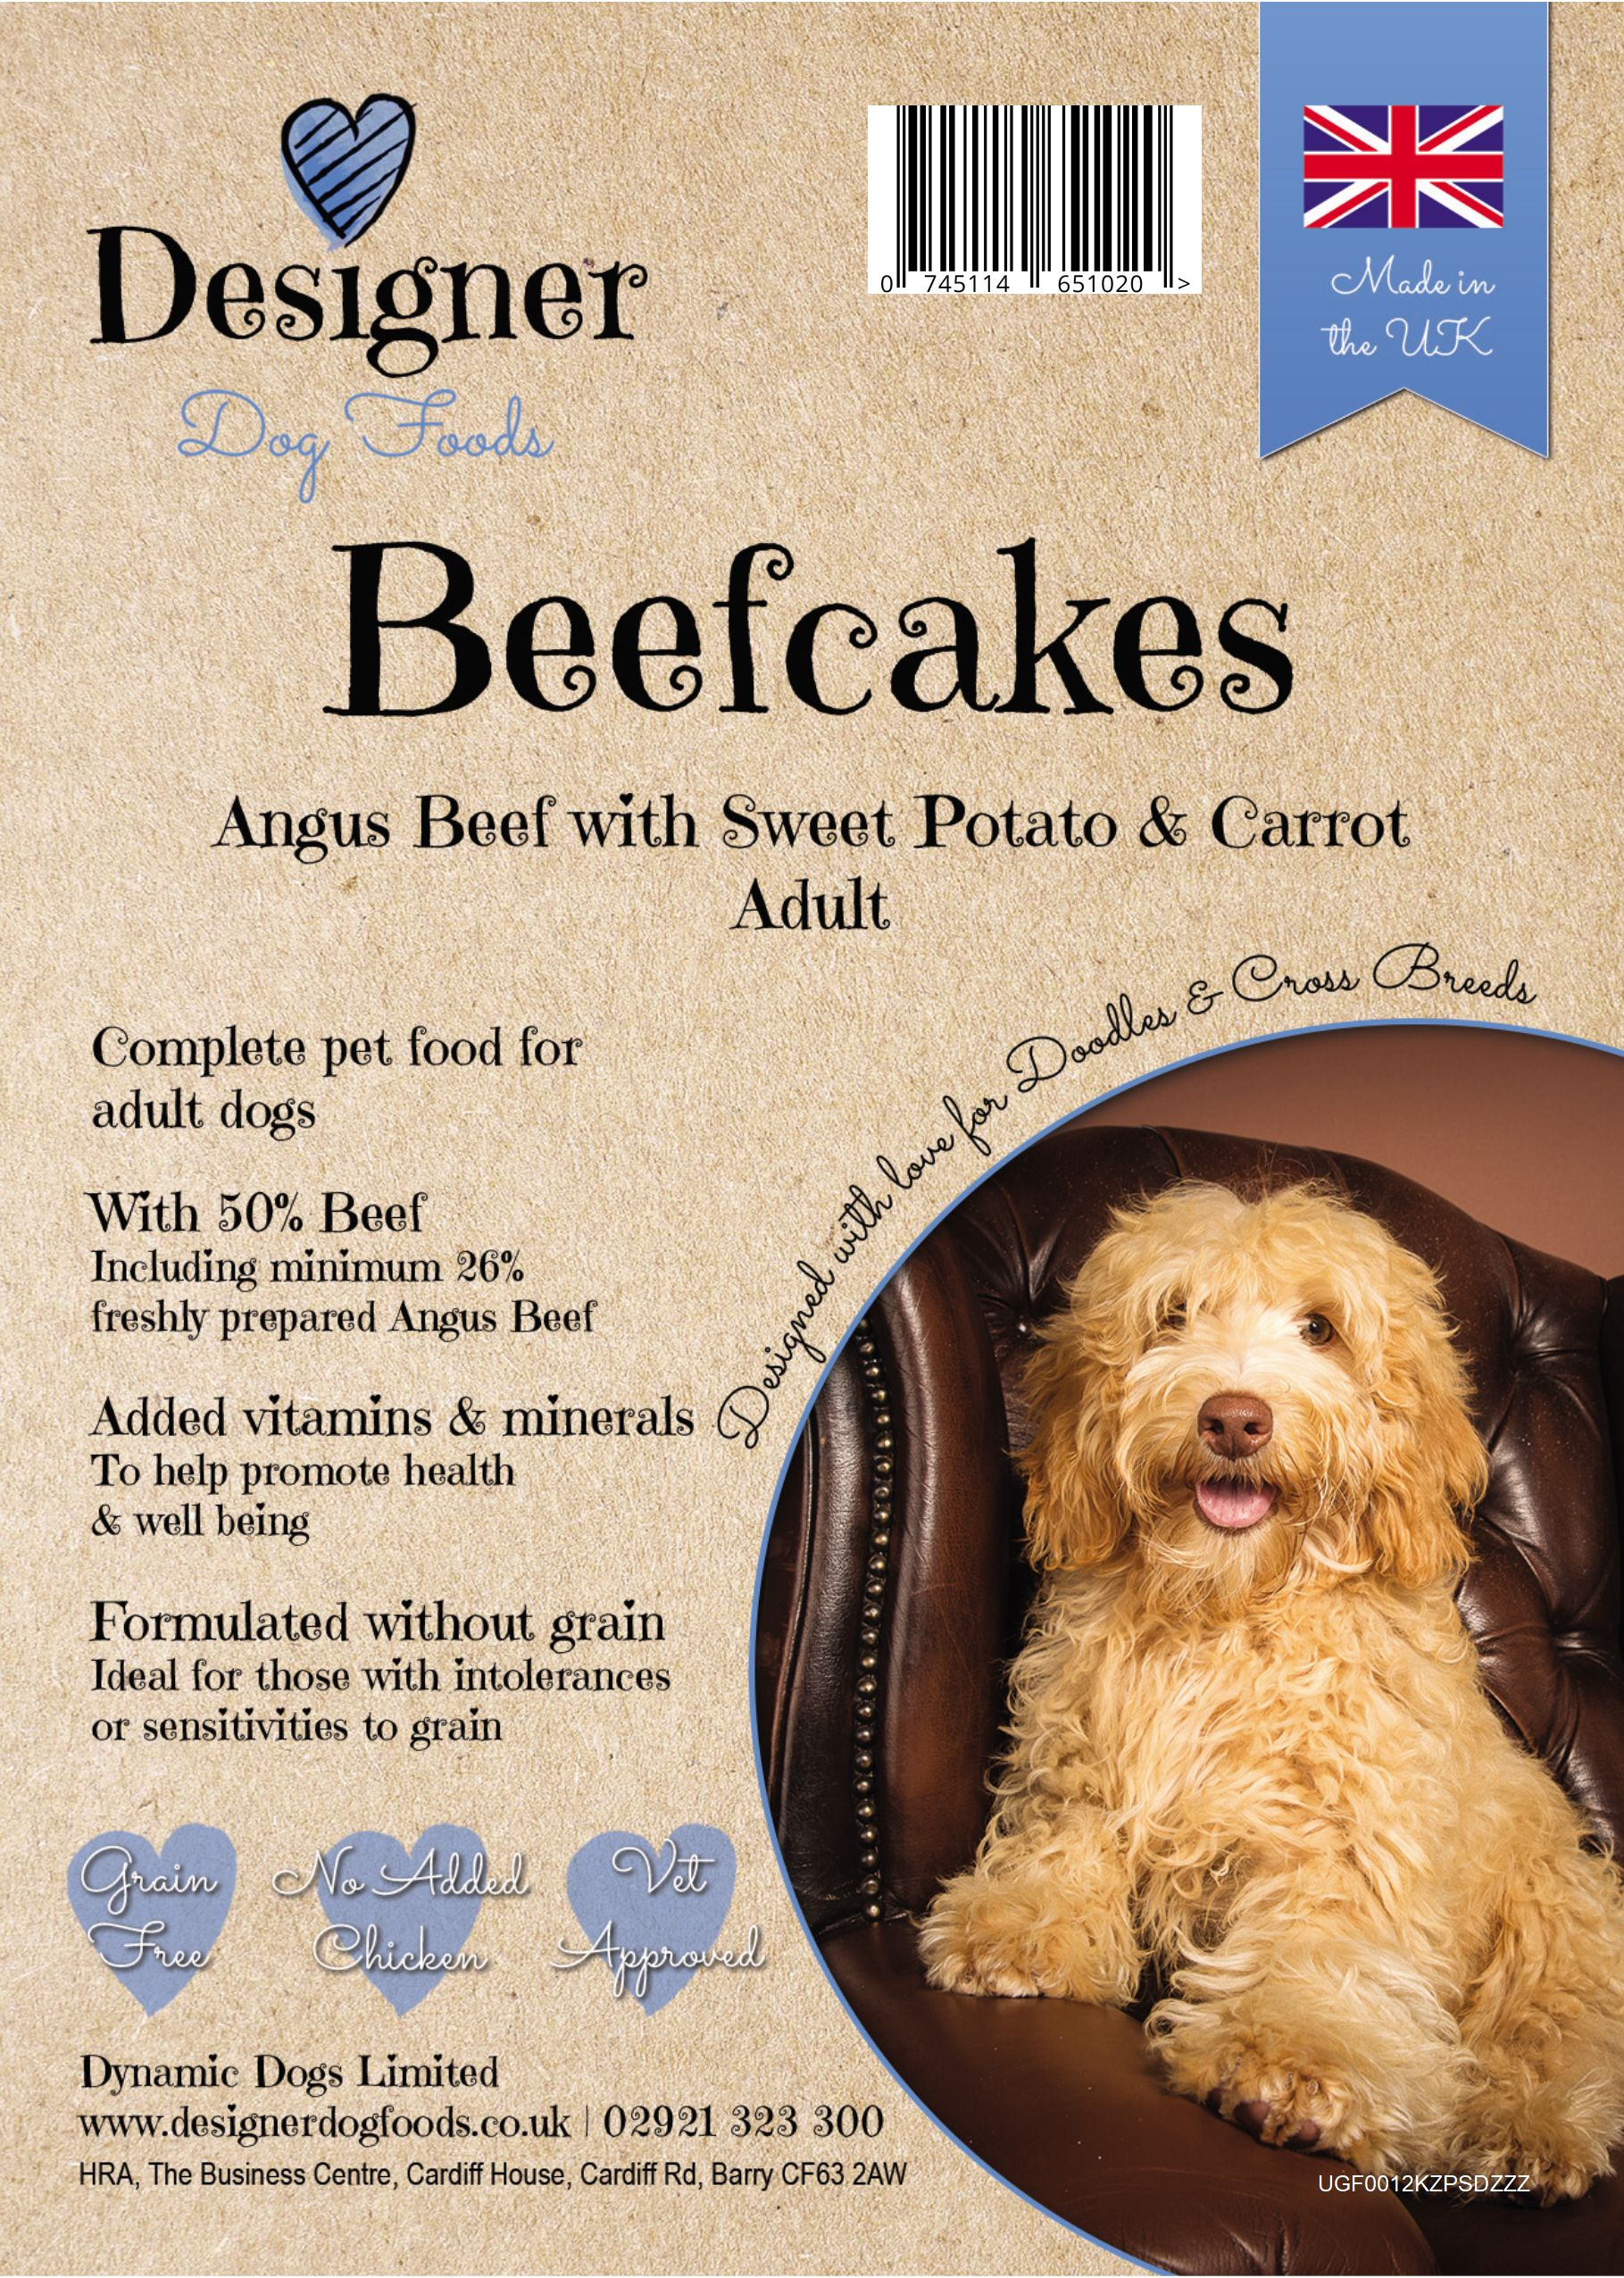 Beefcakes Dog Food Recipes Hypoallergenic Dog Food Dry Dog Food